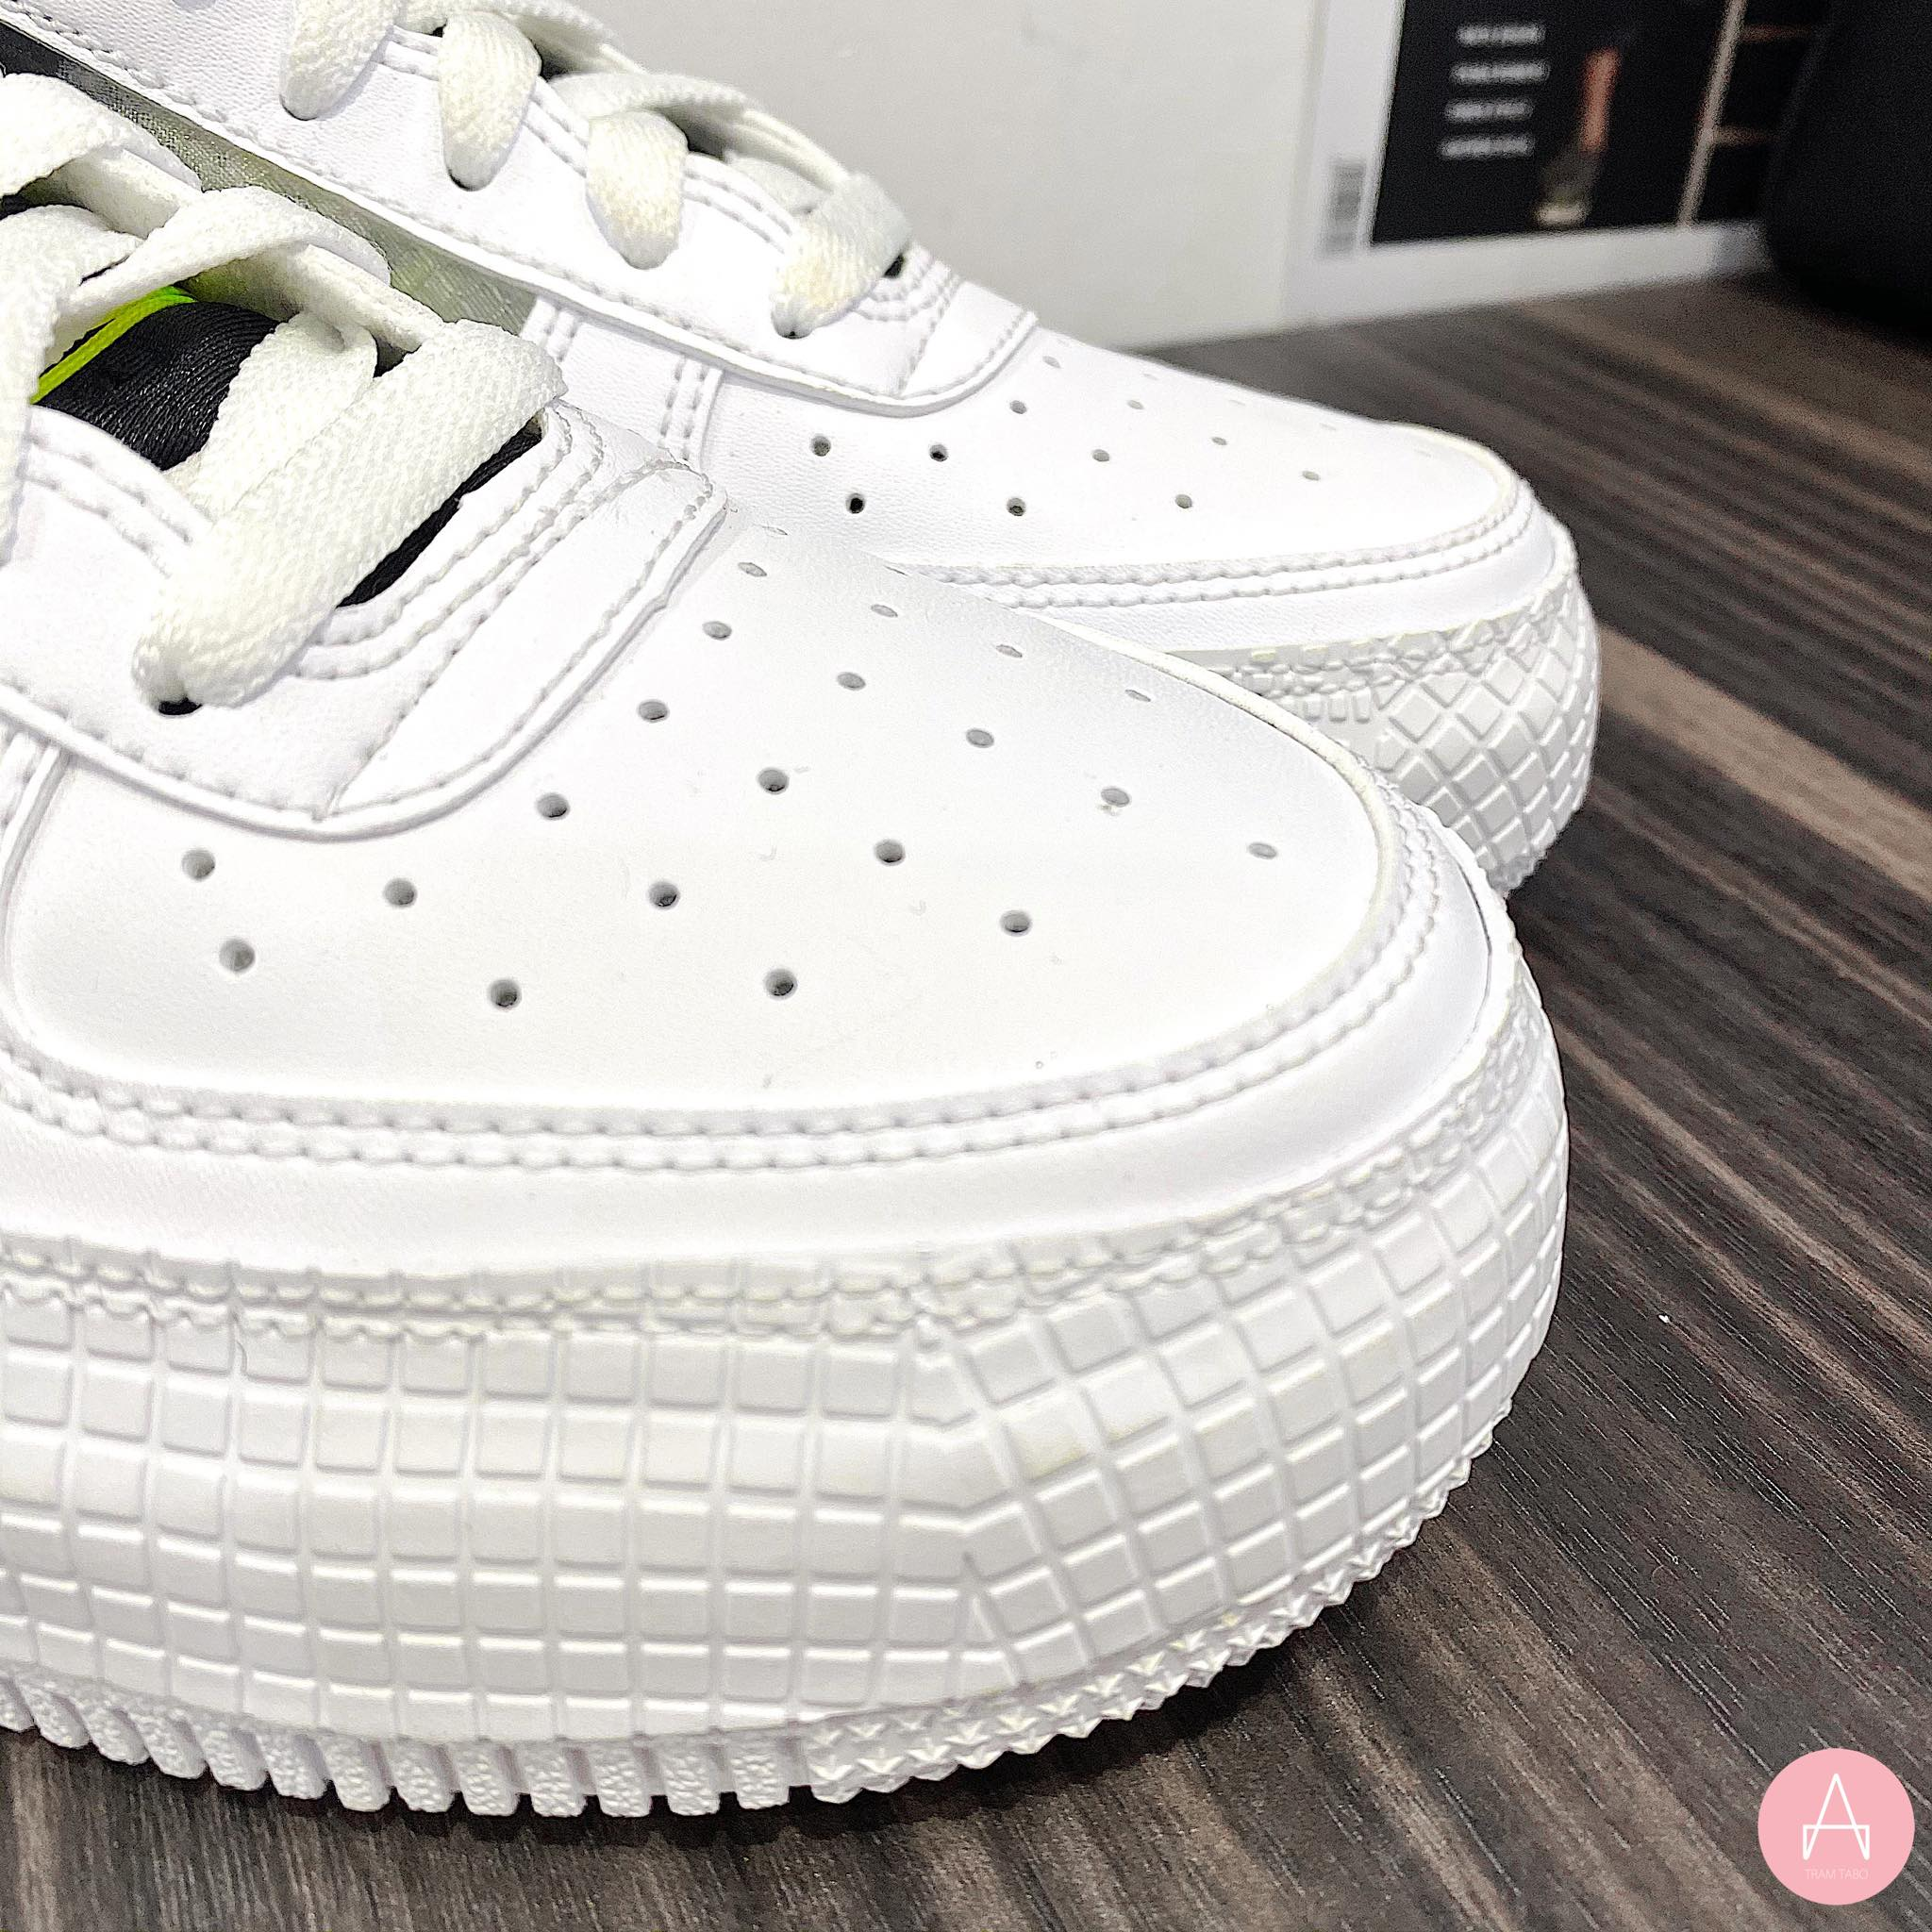 [BQ4793-101] K NIKE AIR FORCE 1 TYPE WHITE BLACK VOLT